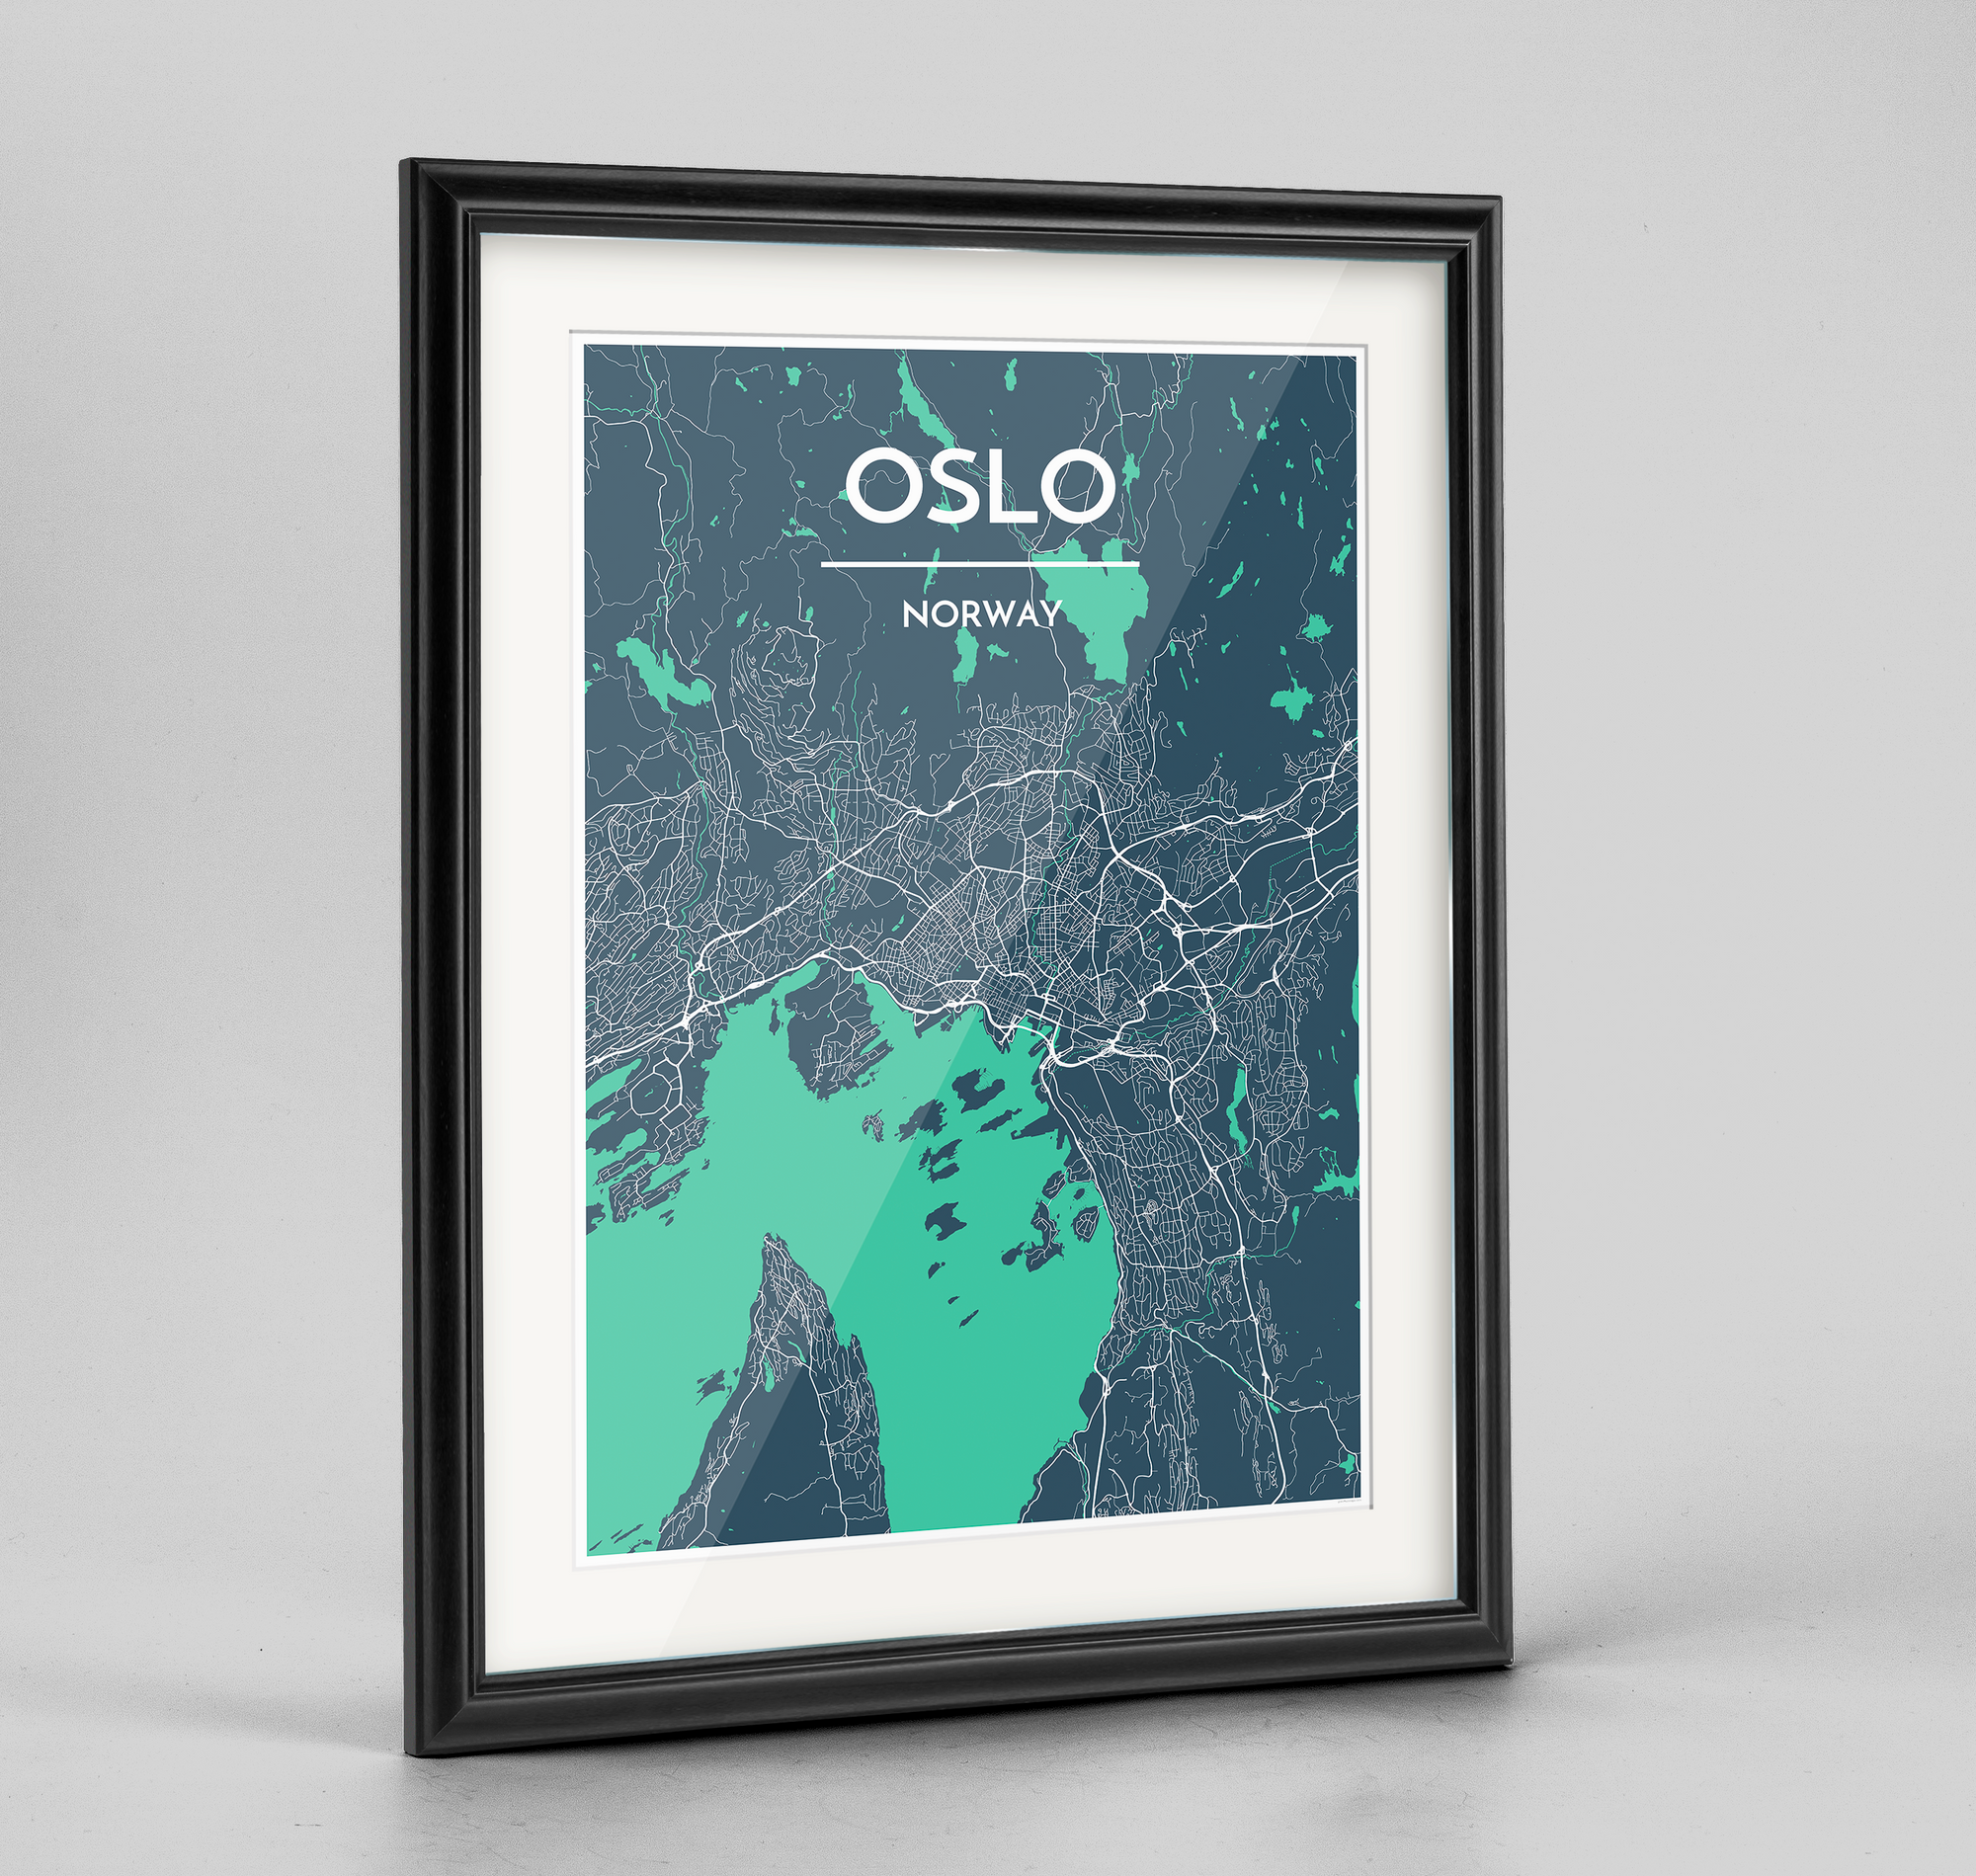 Framed Oslo City Map Art Print - Point Two Design